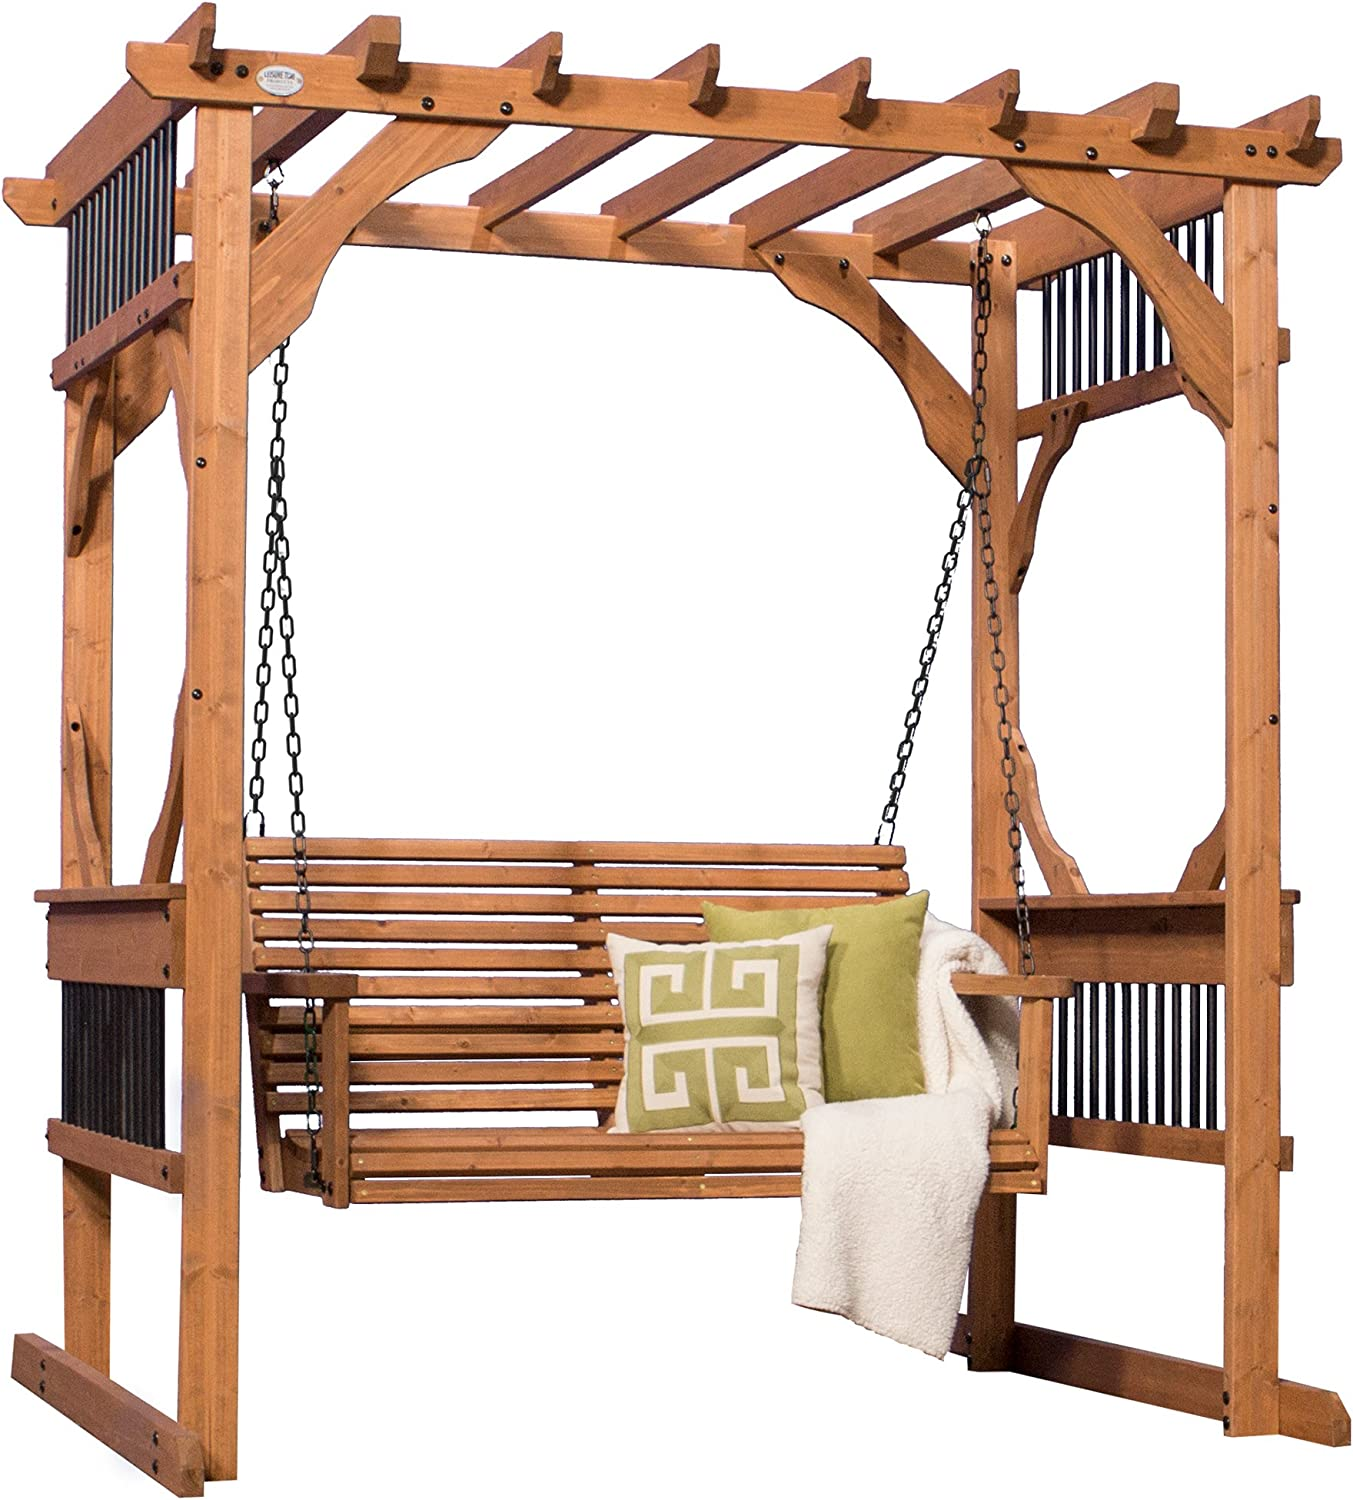 Backyard descubrimiento Deluxe Cedar Pergola Swing: Amazon.es: Jardín